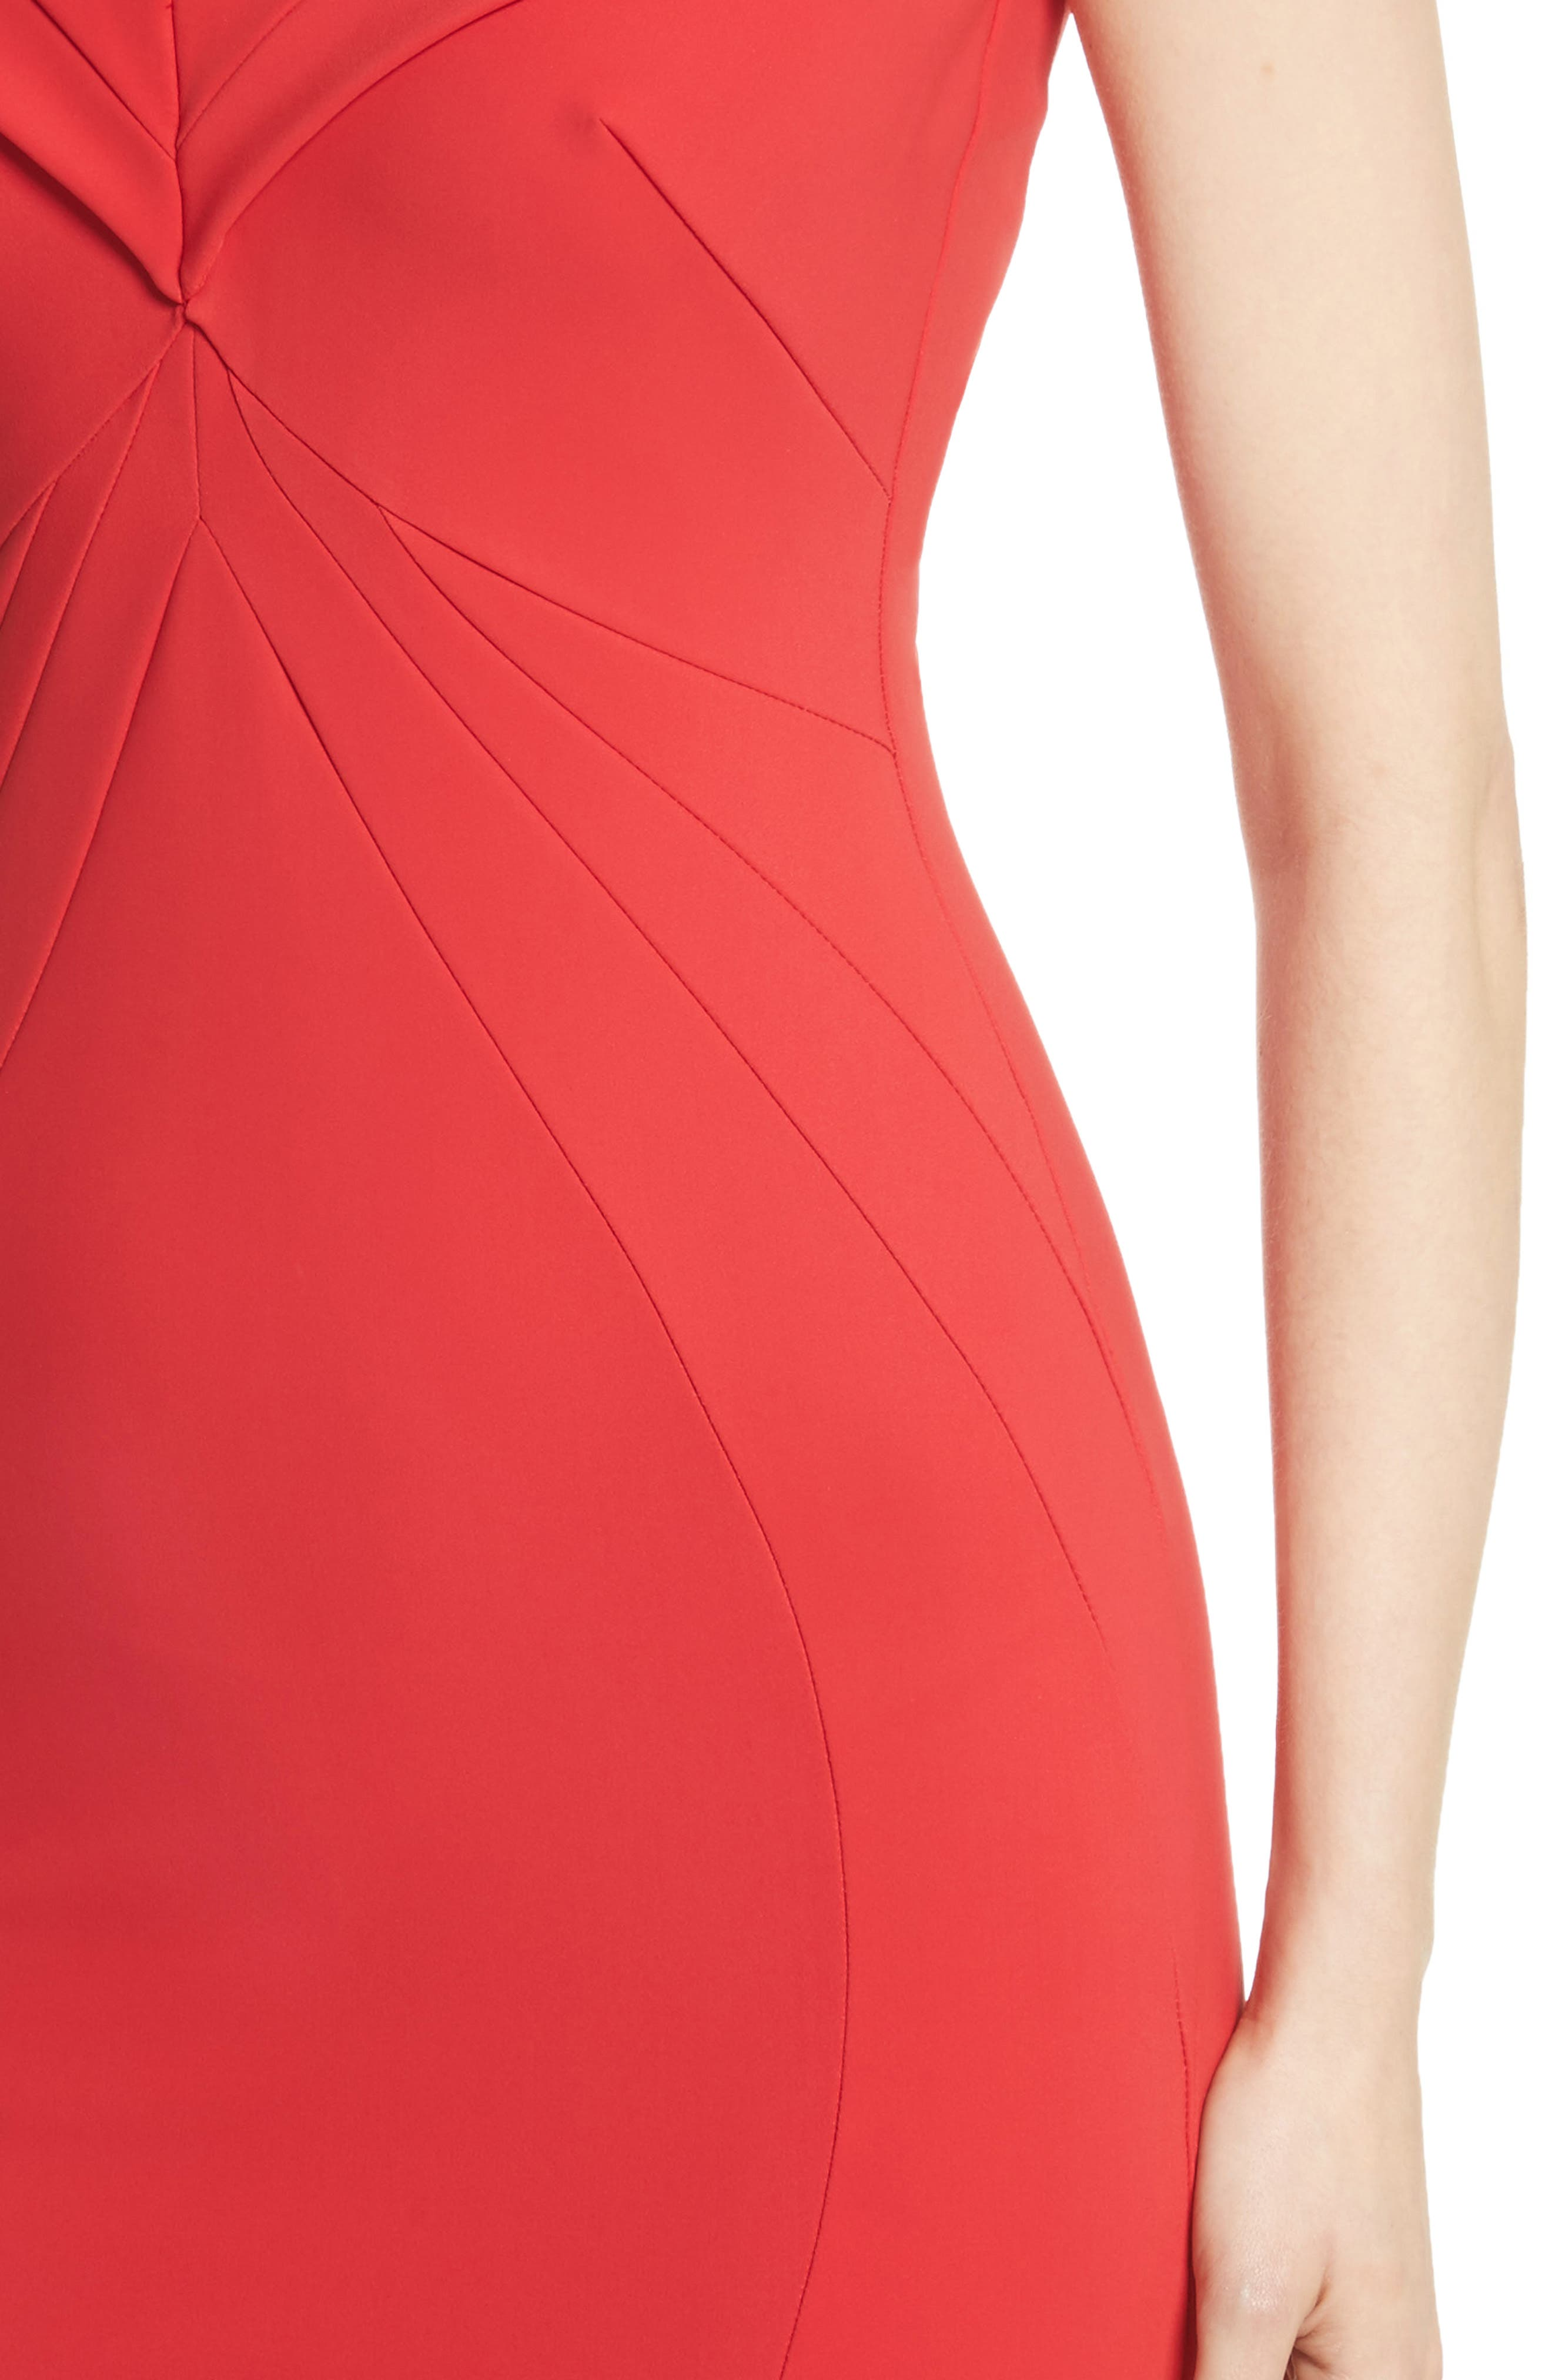 Tally Off the Shoulder Trumpet Gown,                             Alternate thumbnail 4, color,                             Passion/ Red